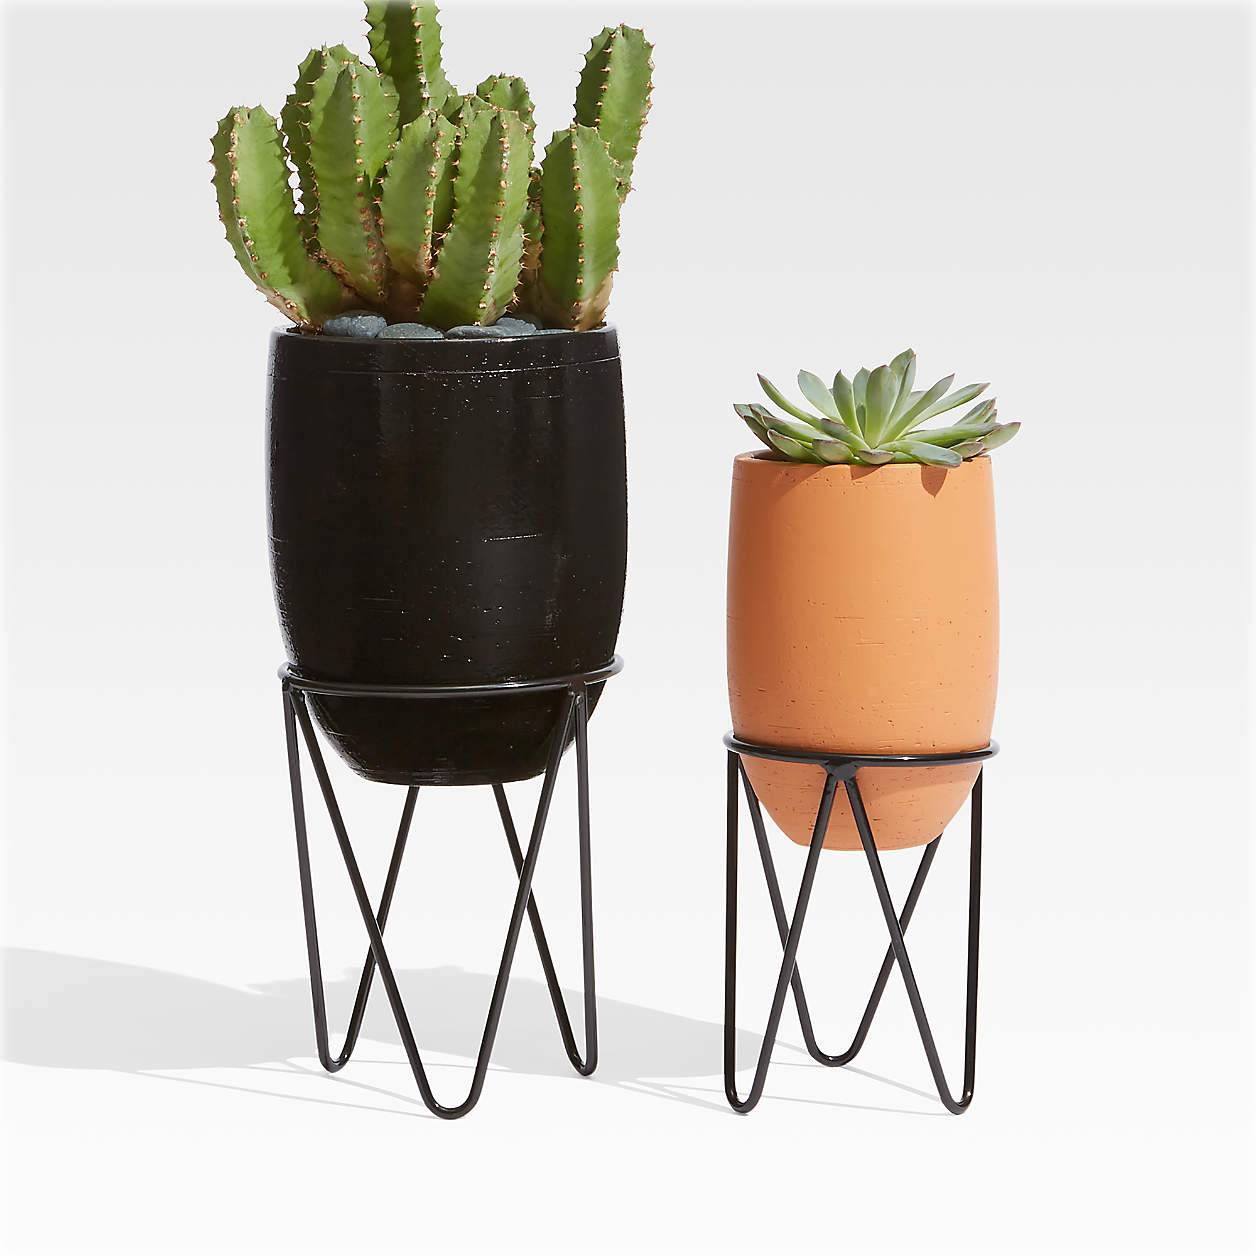 Succulents in black and brown pots